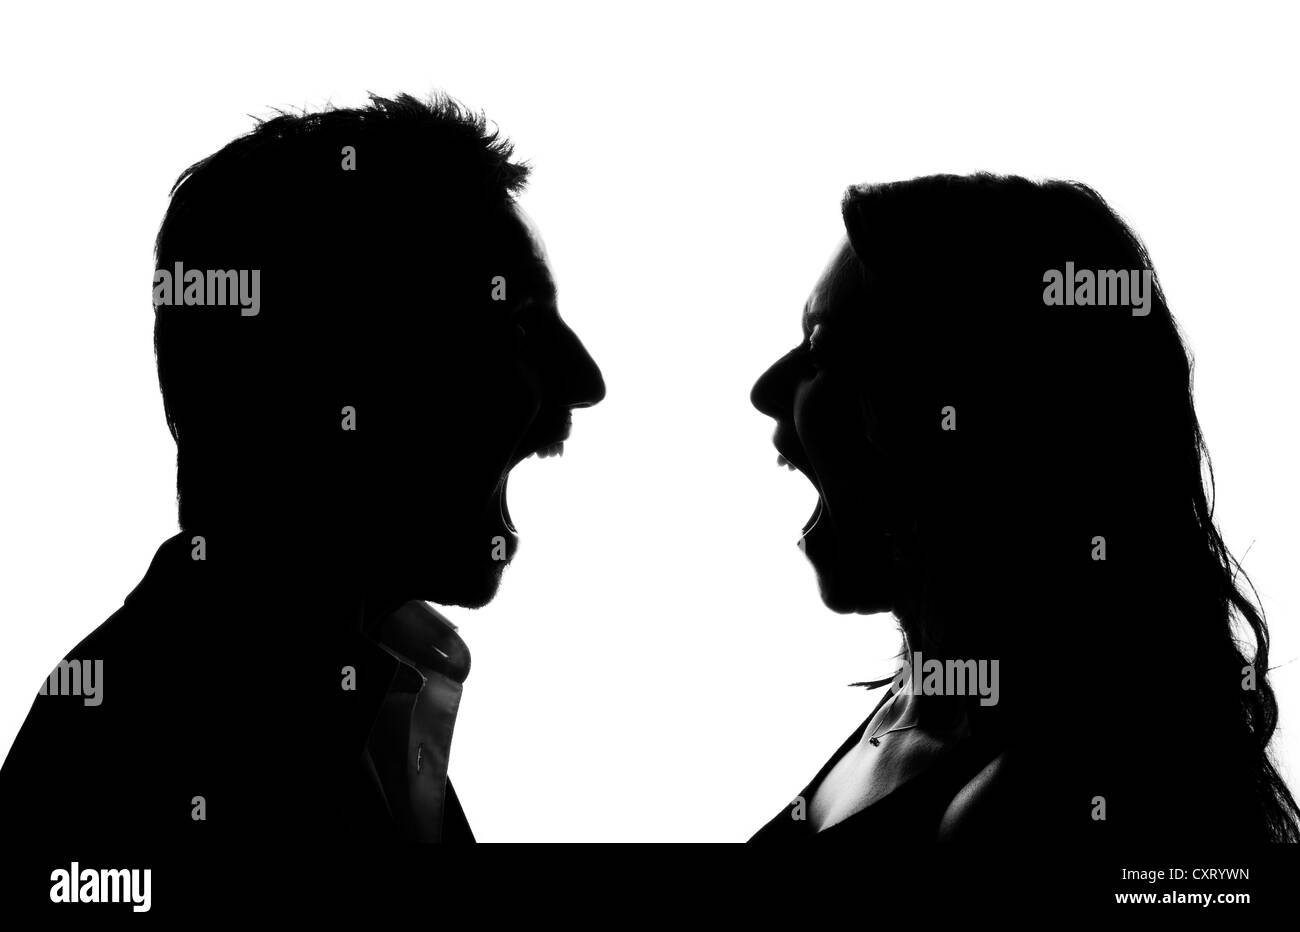 Silhouette, woman and man screaming at each other, argument - Stock Image